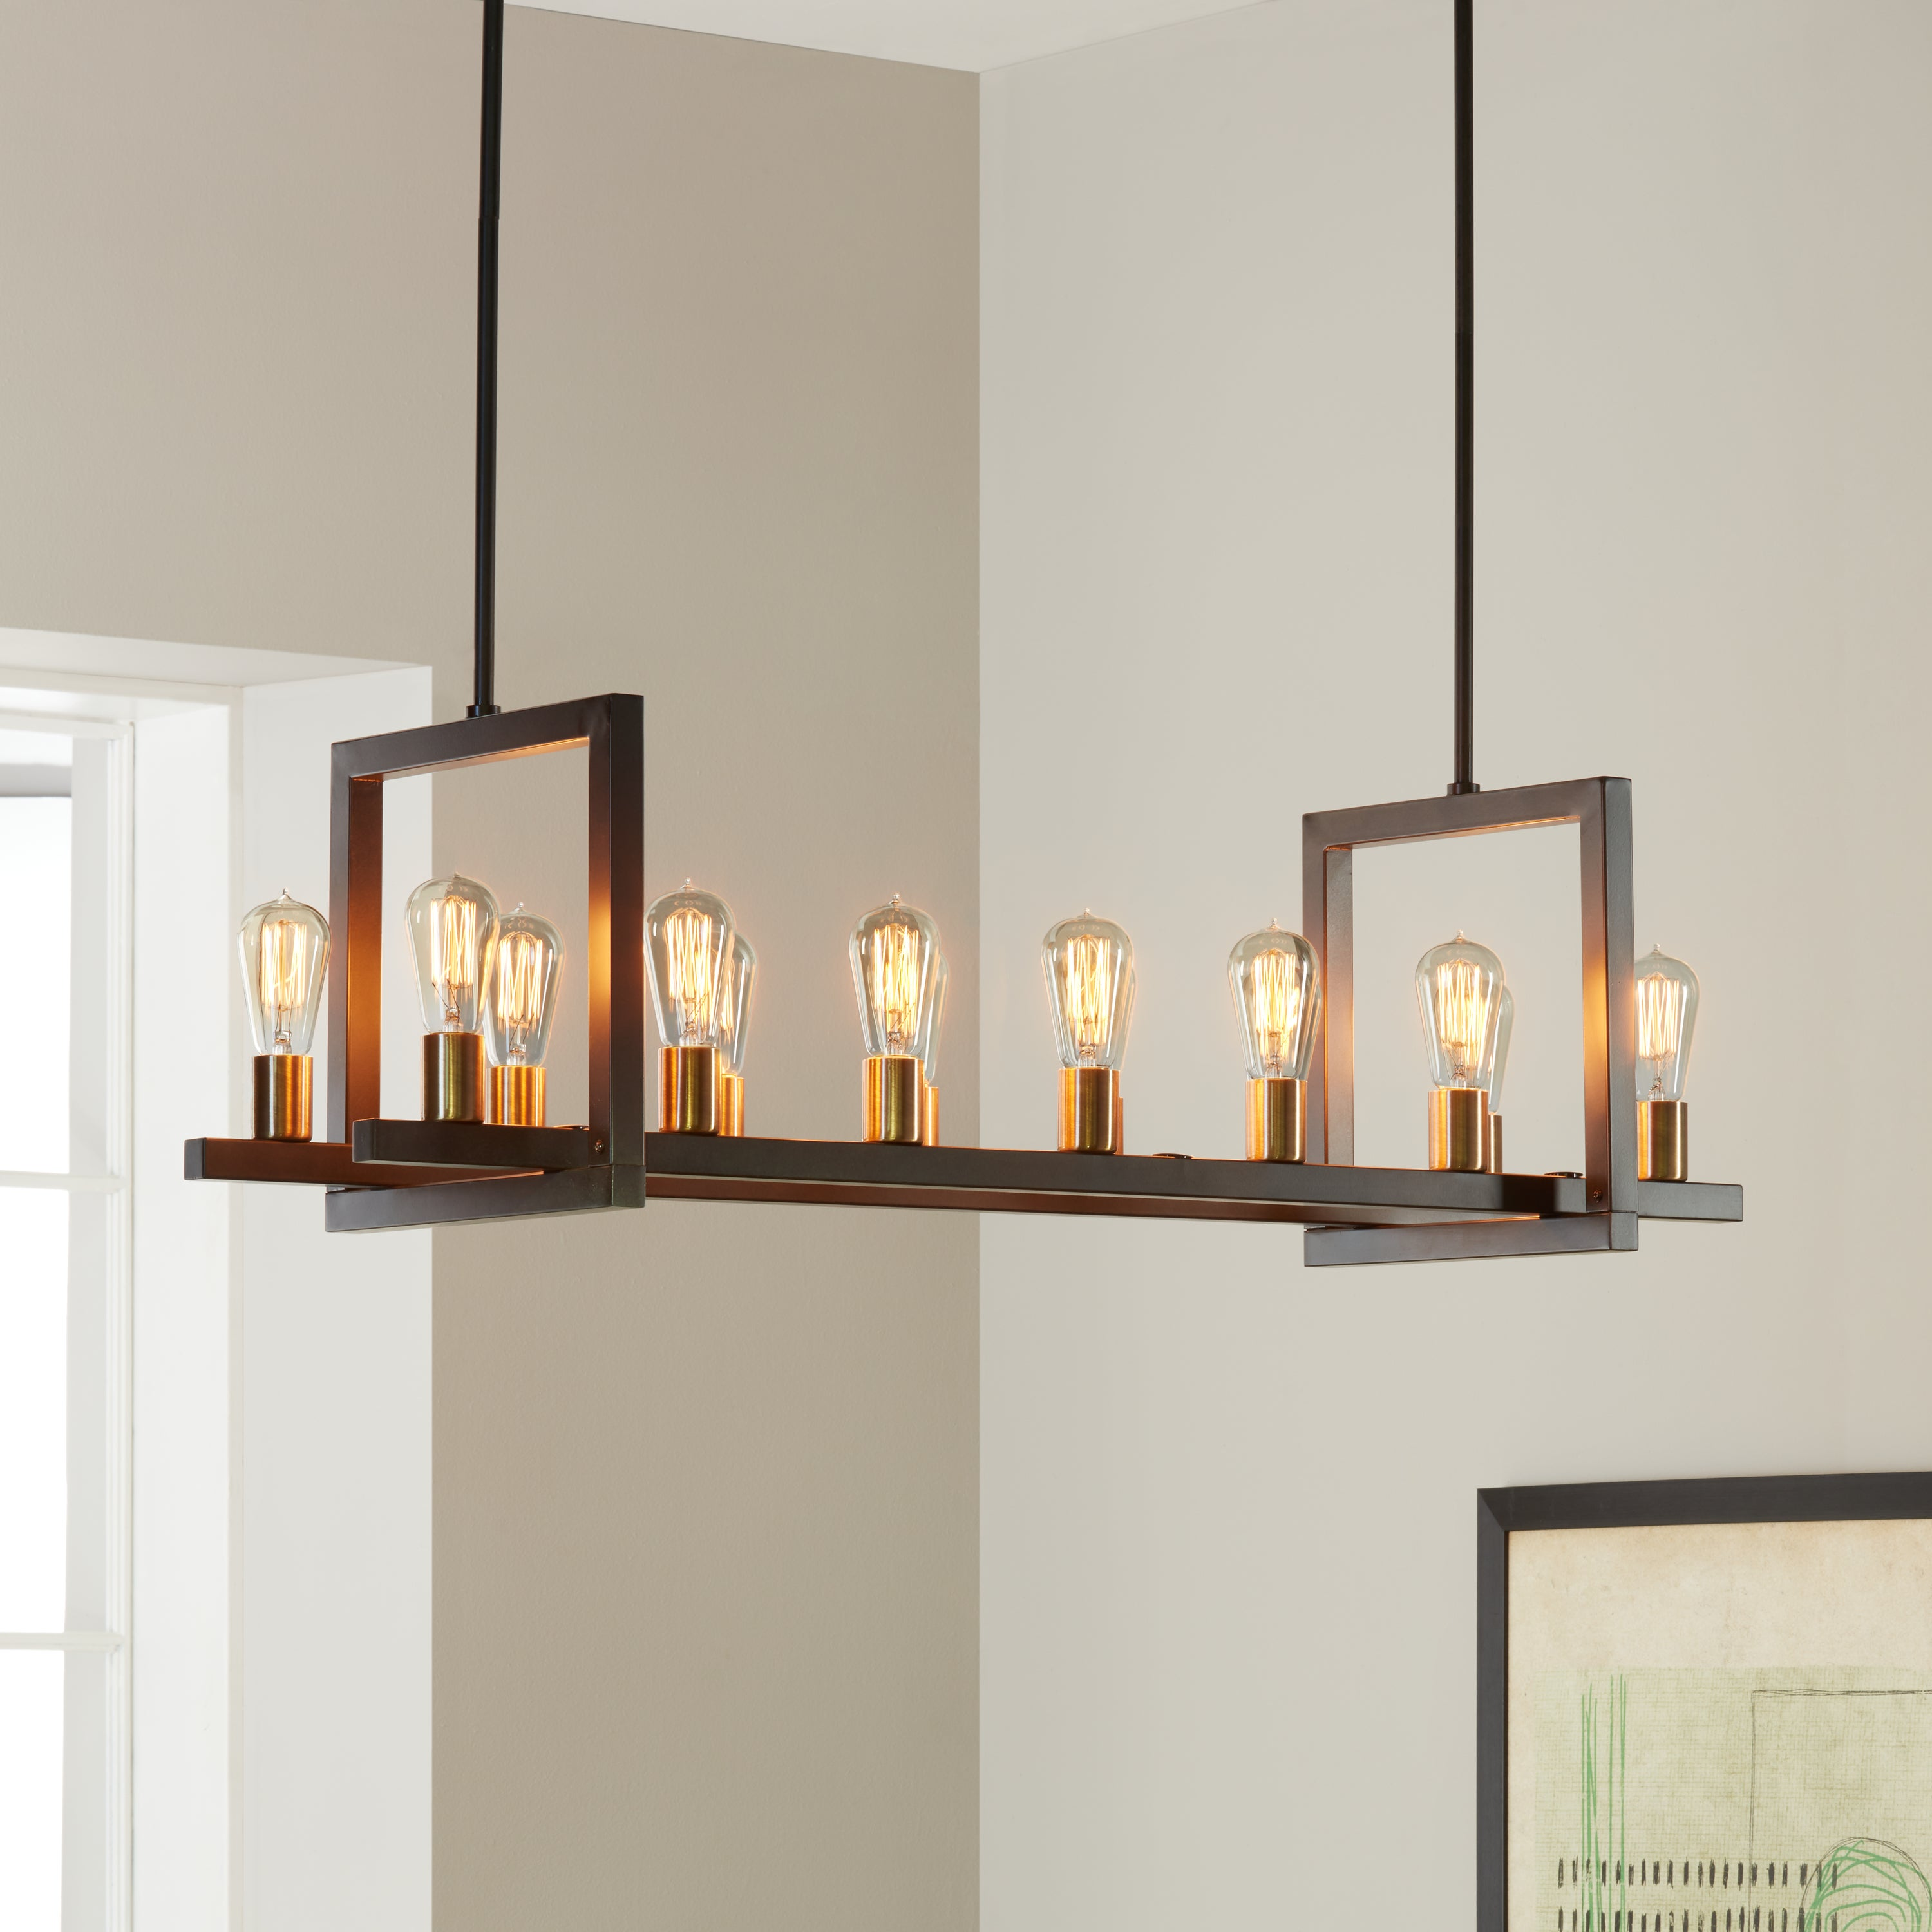 Griffin rectangular 14 light chandelier free shipping today griffin rectangular 14 light chandelier free shipping today overstock 16476925 arubaitofo Gallery